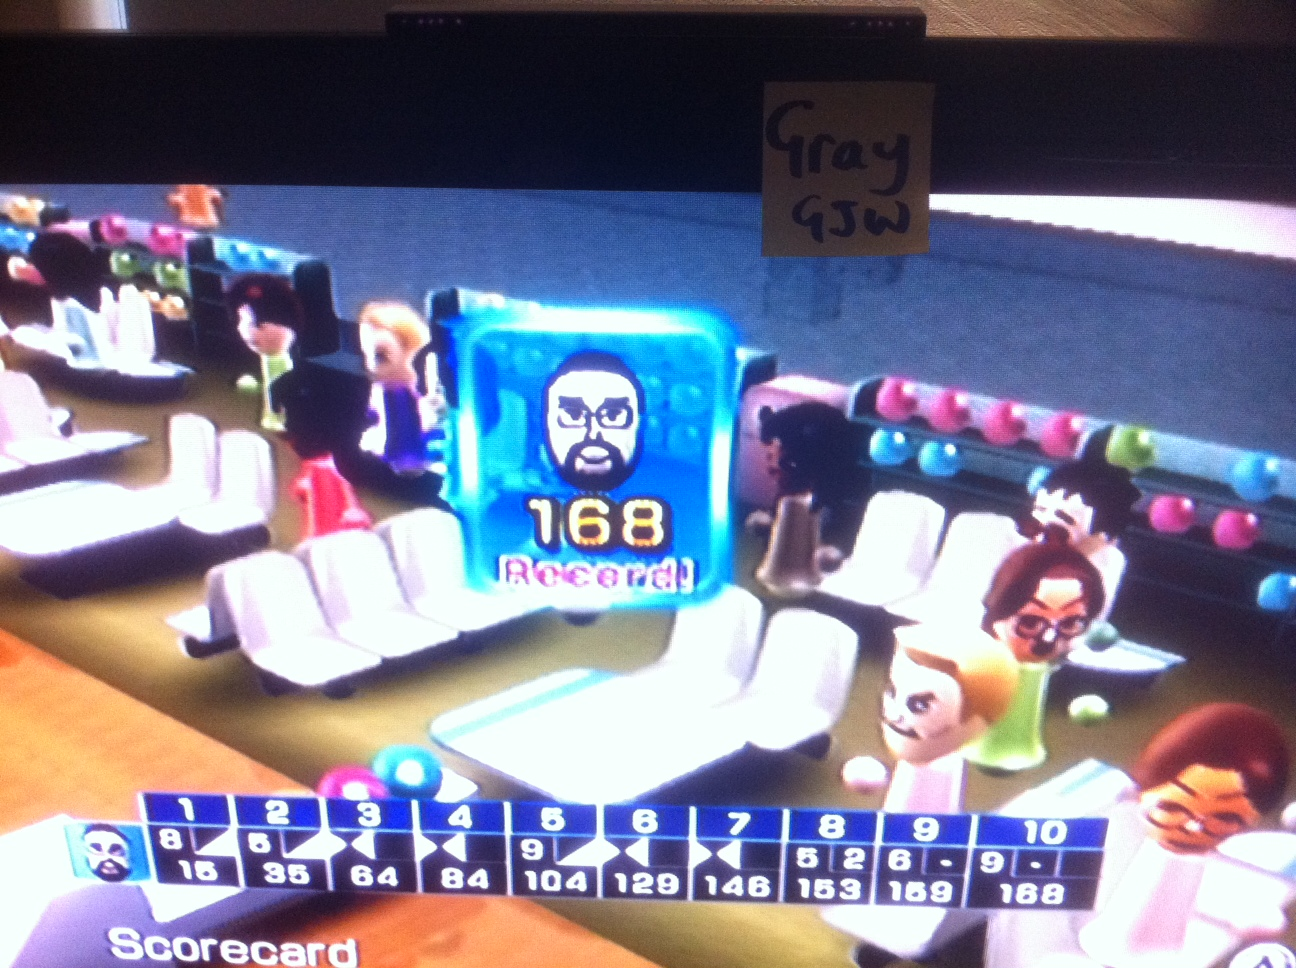 Wii Sports: Bowling [Game Score] 168 points